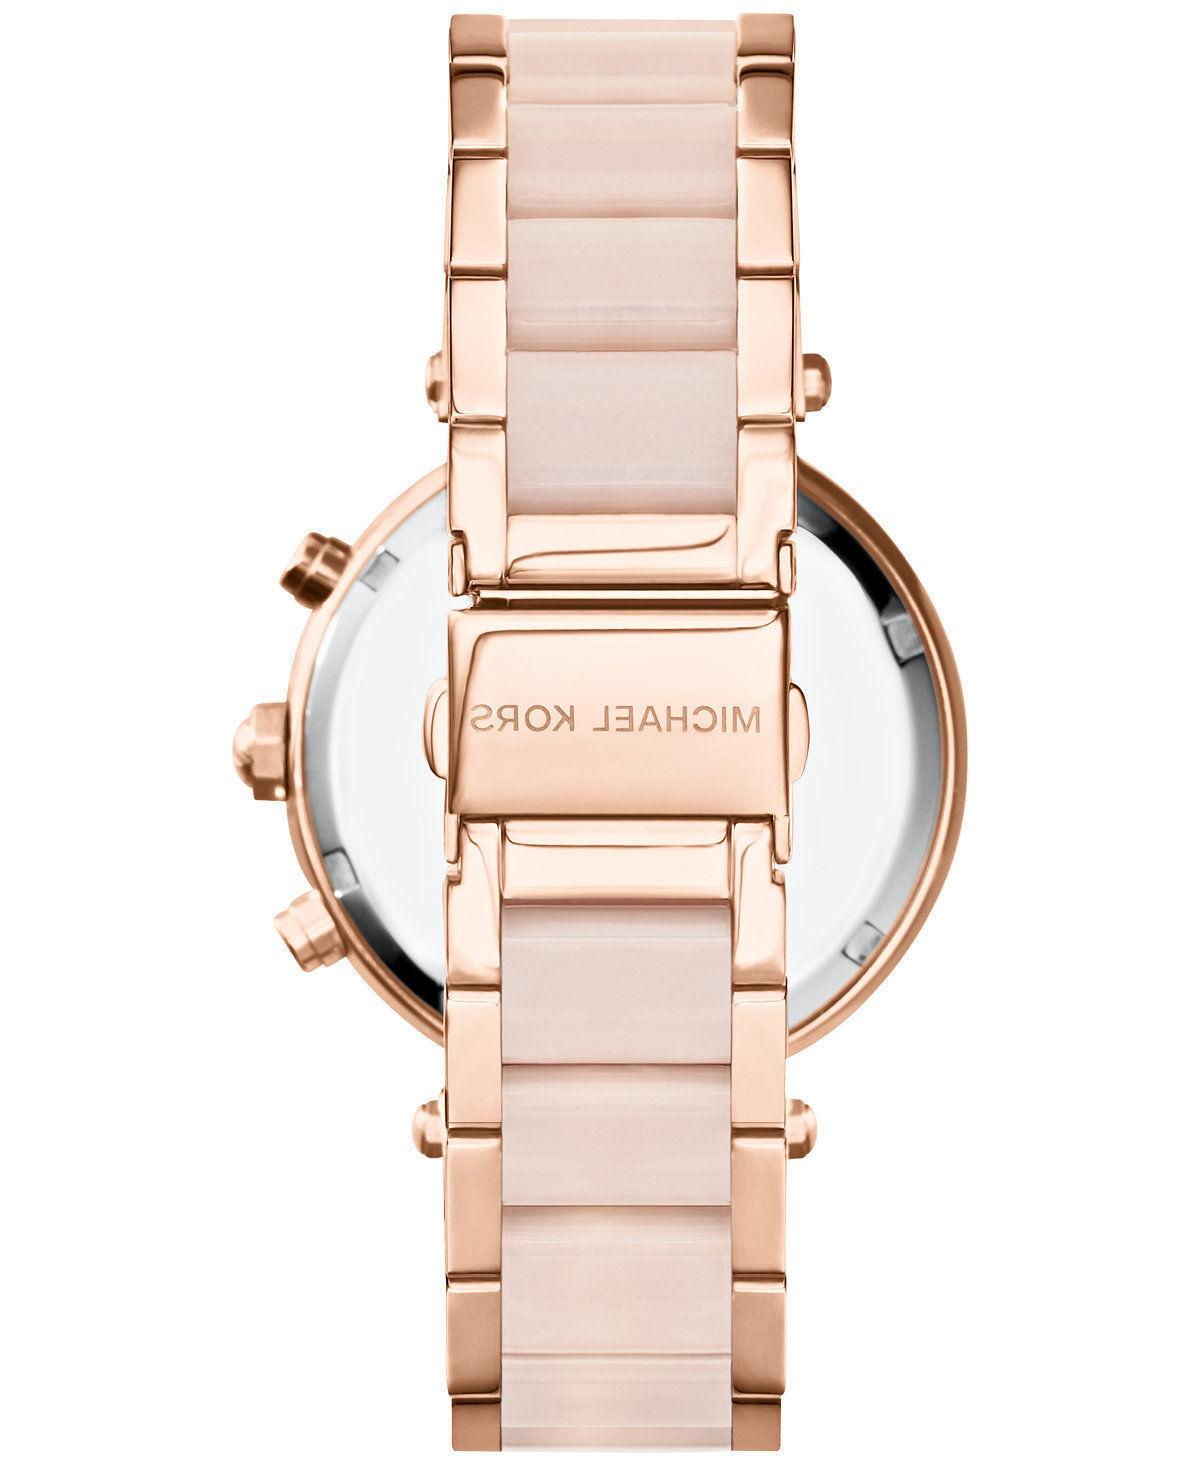 New Kors Rose Blush Watch Blush Crystal